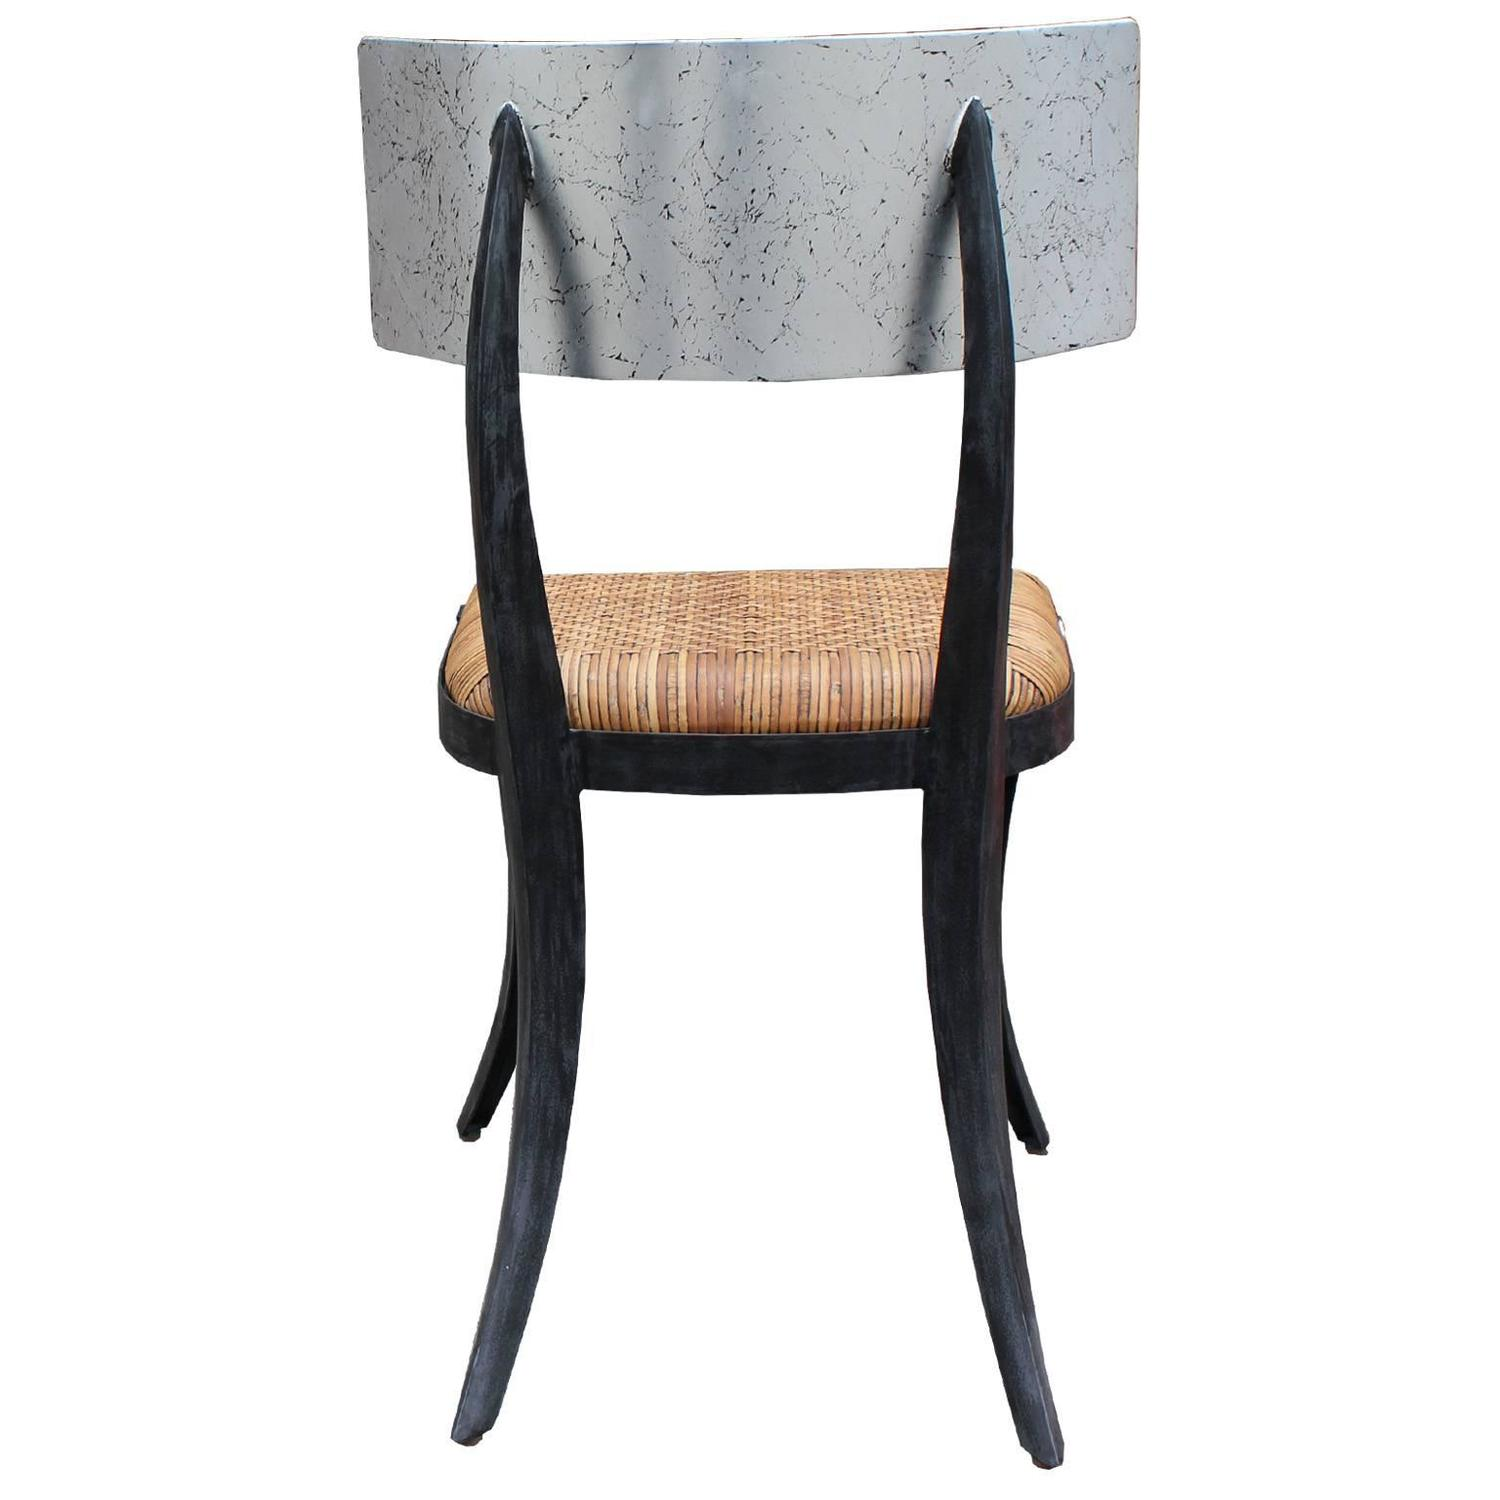 Fabulous Steel Klismos Chair with Woven Leather Seat For